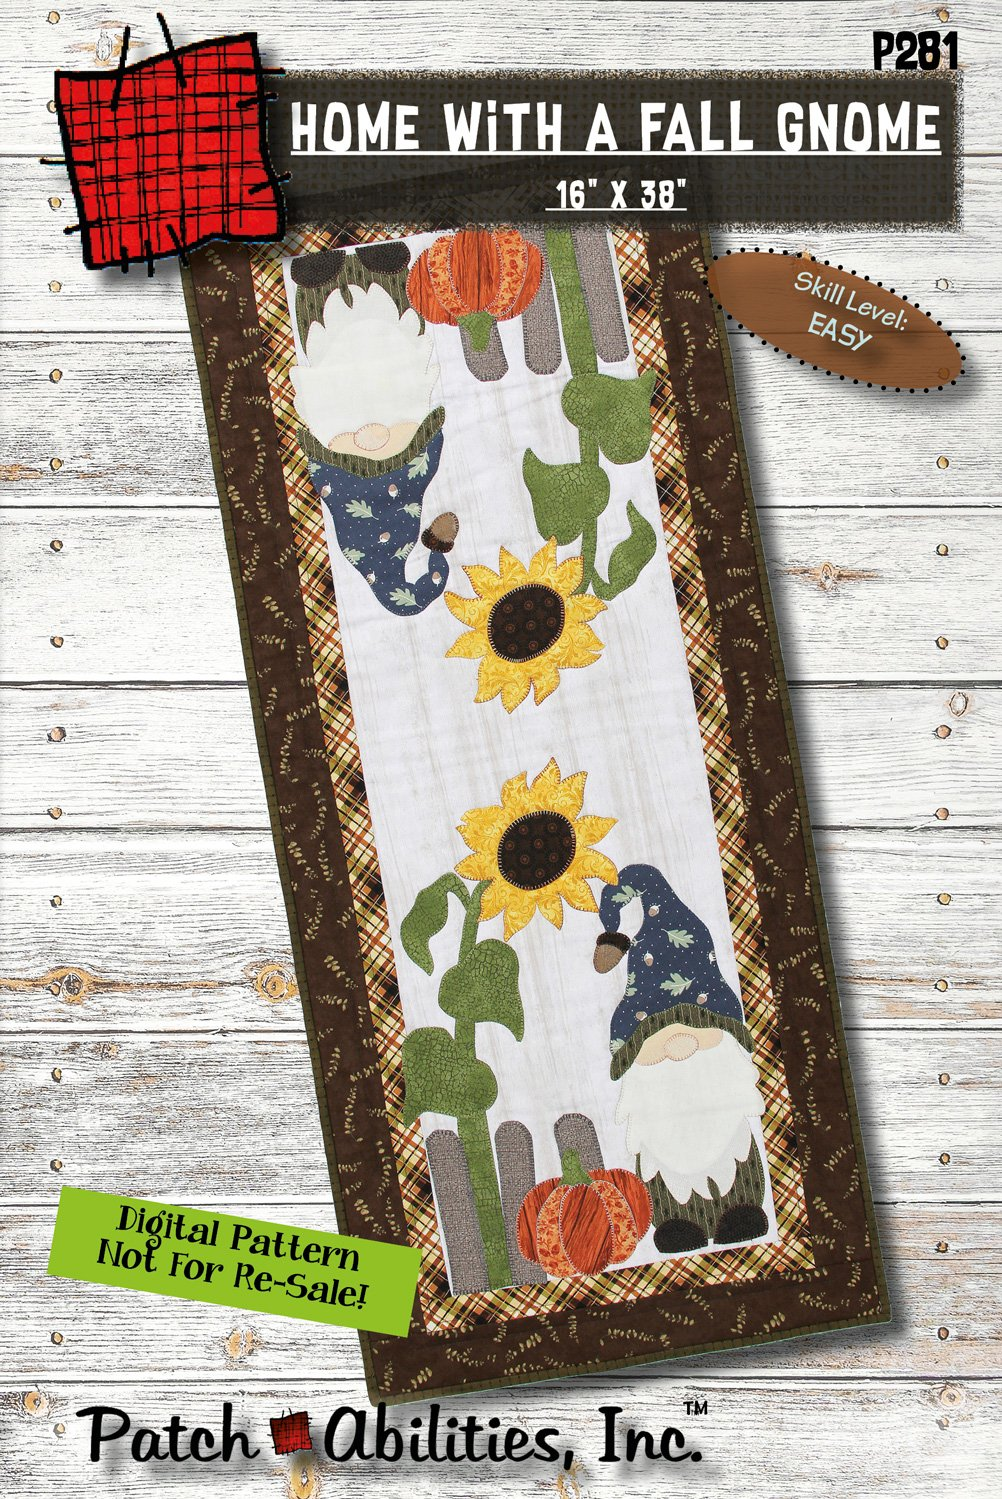 P281 Home With A Fall Gnome Runner DIGITAL DOWNLOAD PATTERN